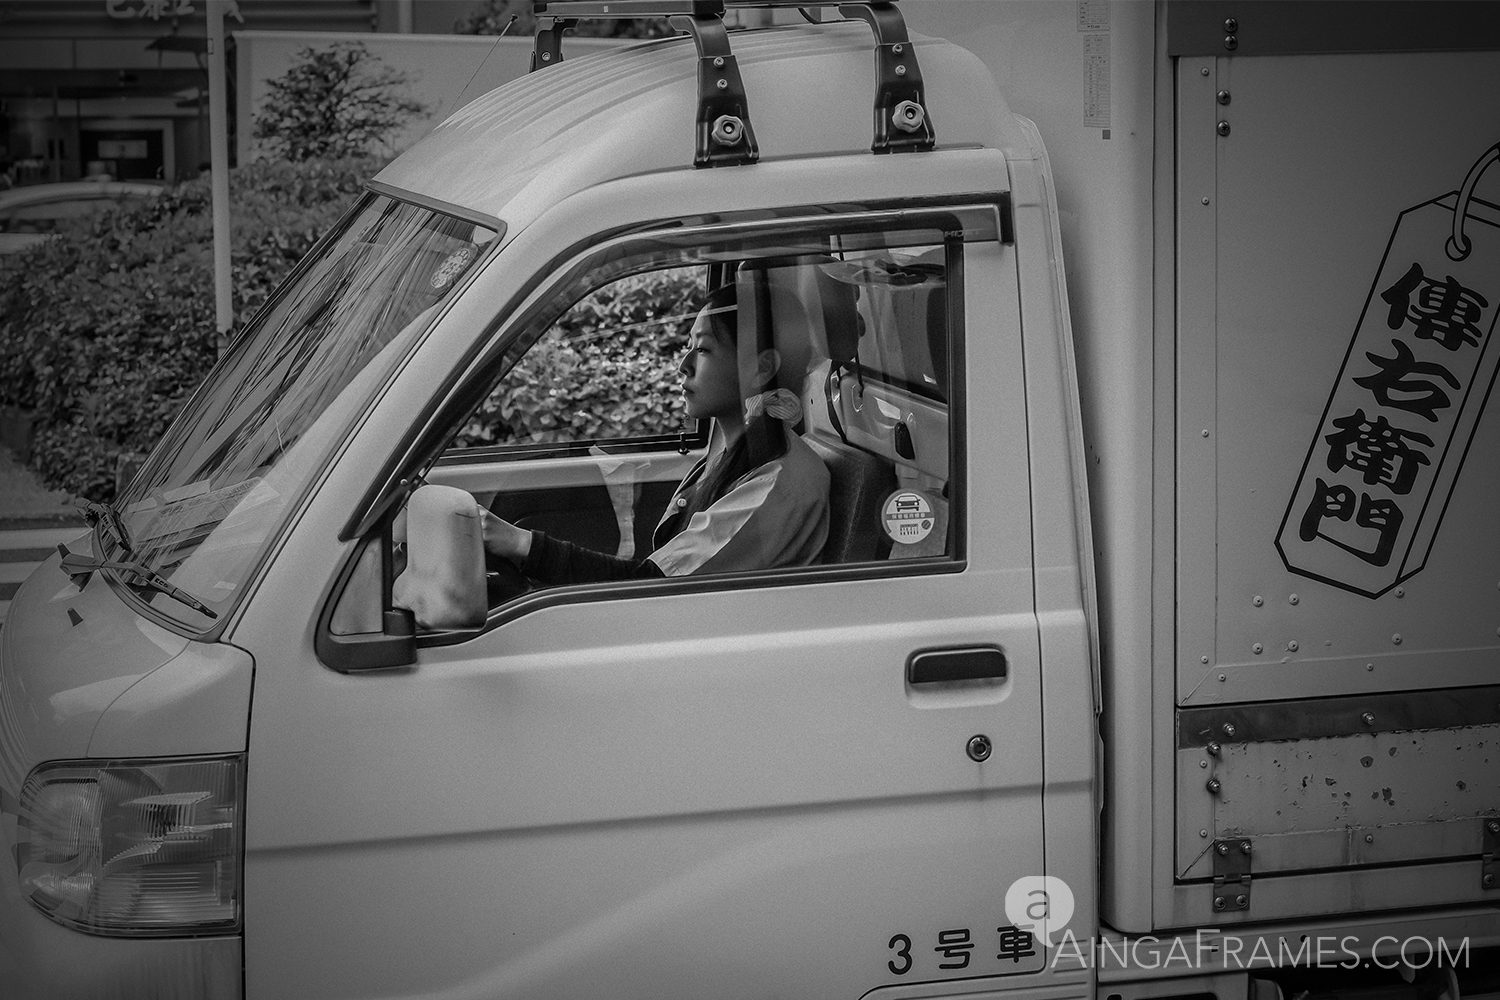 The expressionless face of the young female truck driver making her early morning run near Tsukiji, Tokyo.